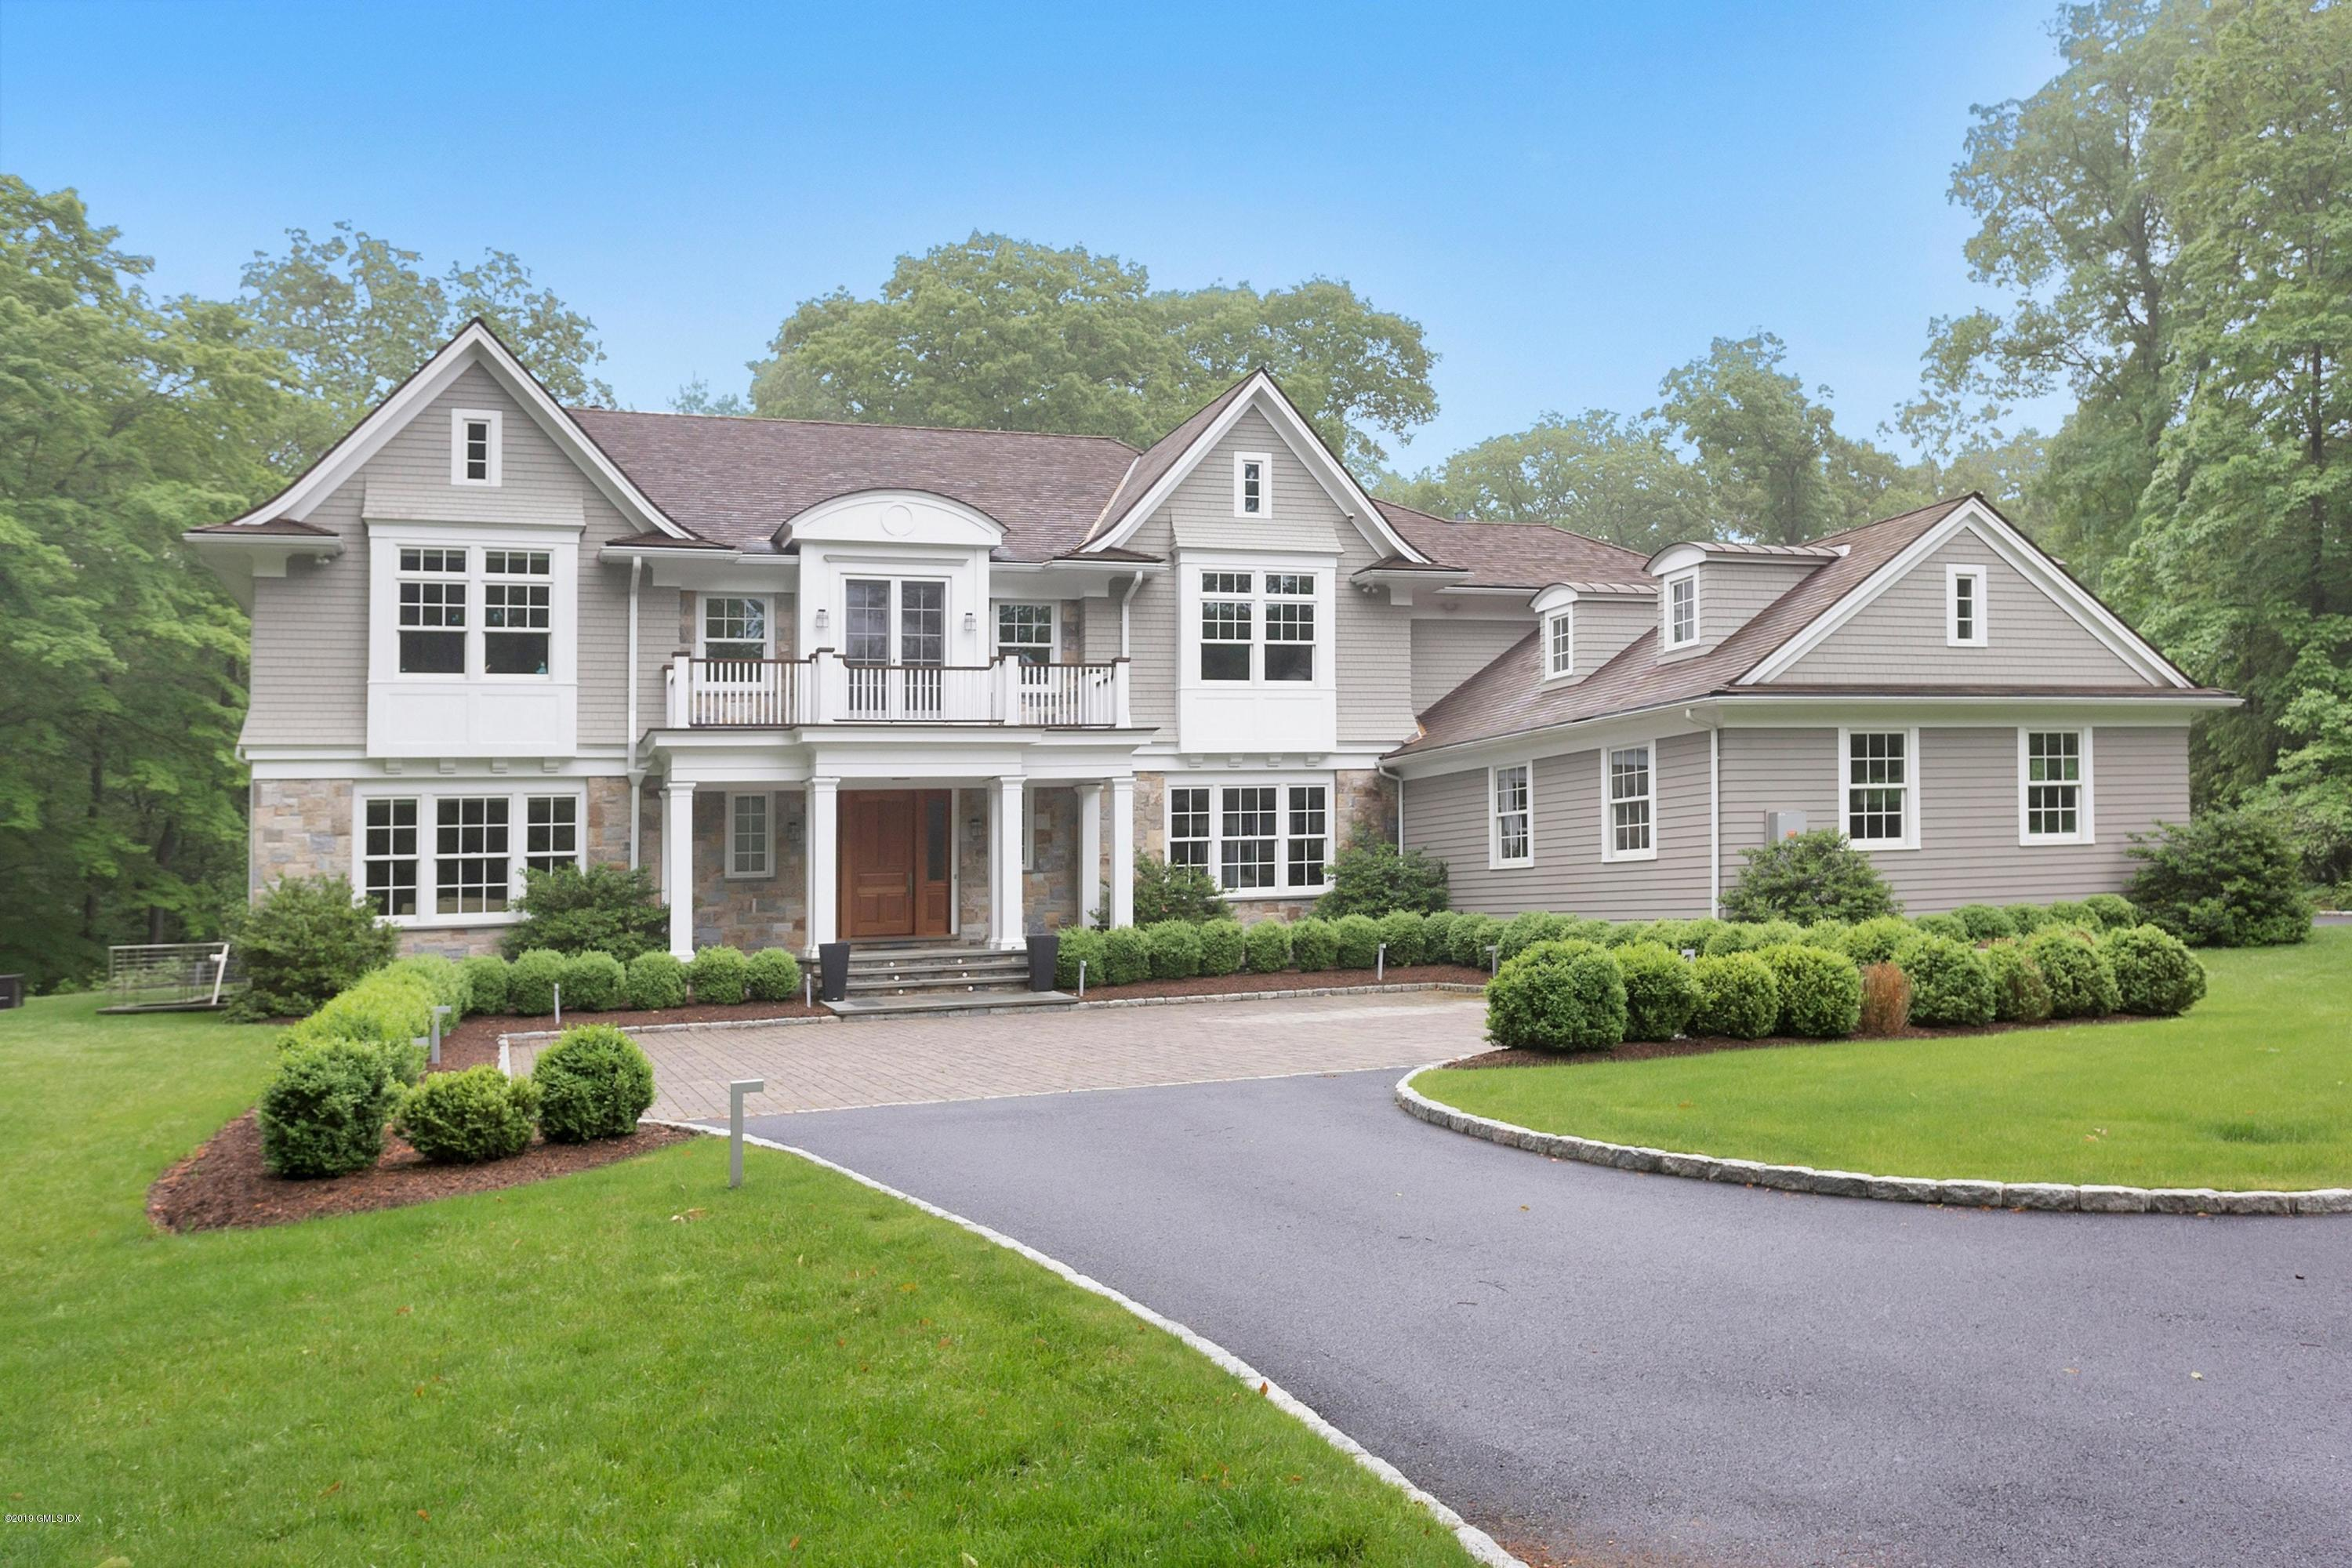 78 Rockwood Lane,Greenwich,Connecticut 06830,5 Bedrooms Bedrooms,6 BathroomsBathrooms,Single family,Rockwood,106148